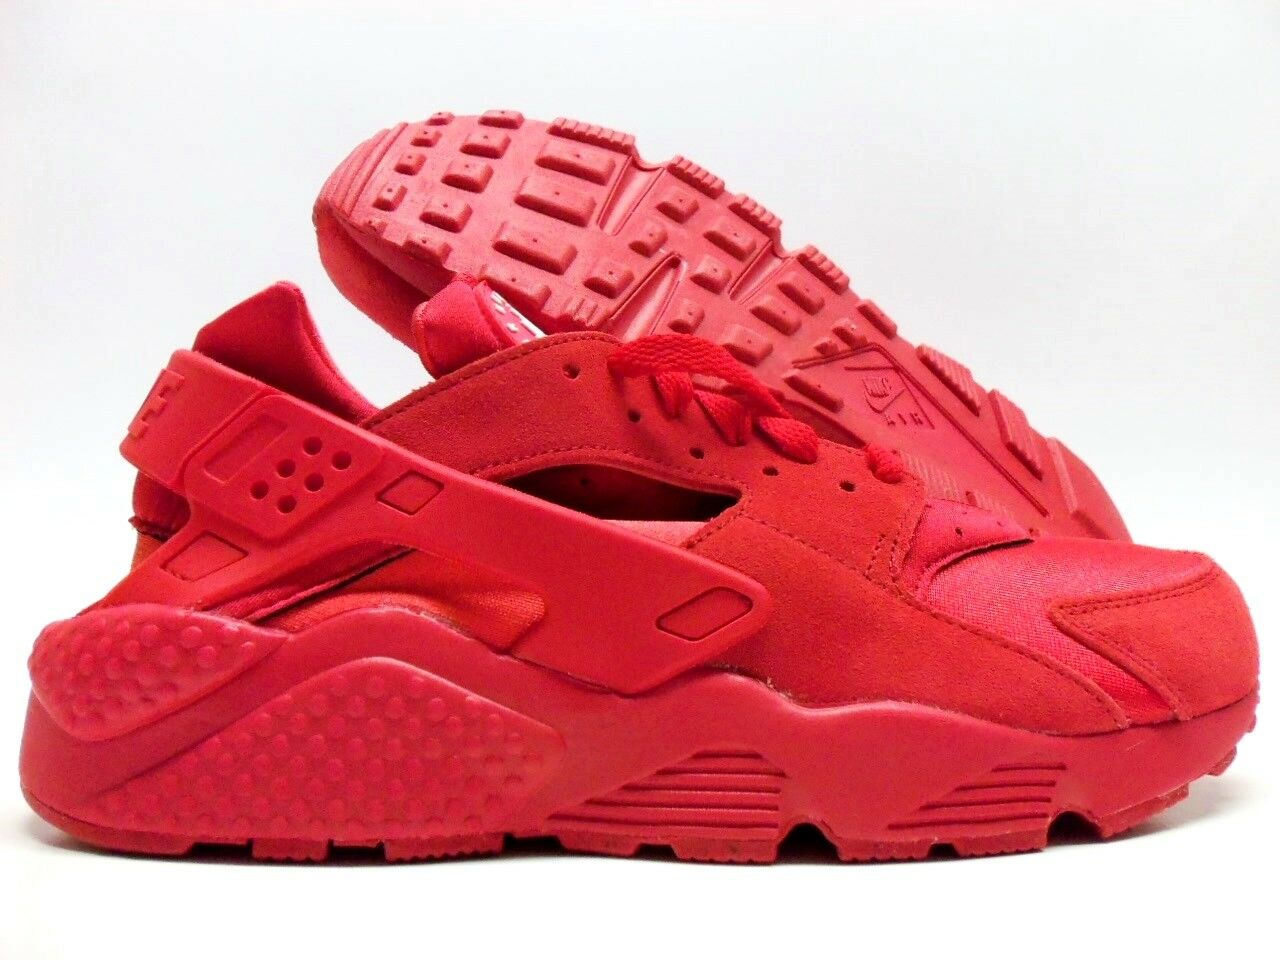 NIKE AIR HUARACHE RUN ID RED OCTOBER UNIVERSITY RED SIZE MEN'S 9 [777330-997]